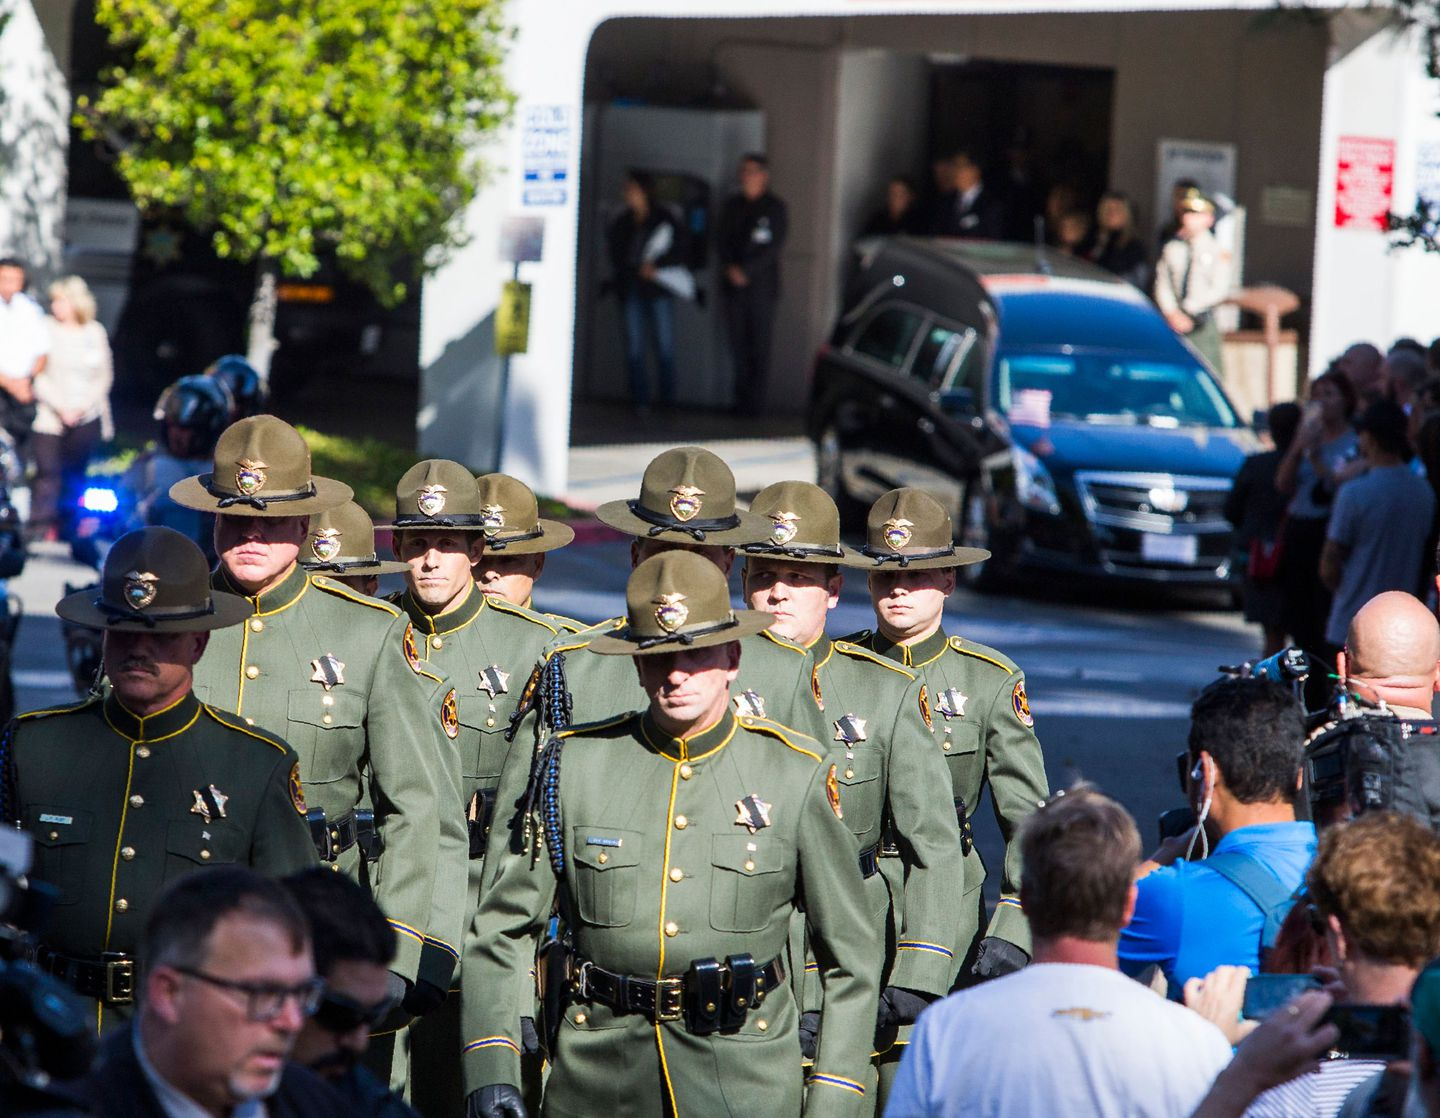 Ventura Sheriff Officers opened the way for a motorcade, carrying Ventura Country sheriff Sgt. Ron Helus.